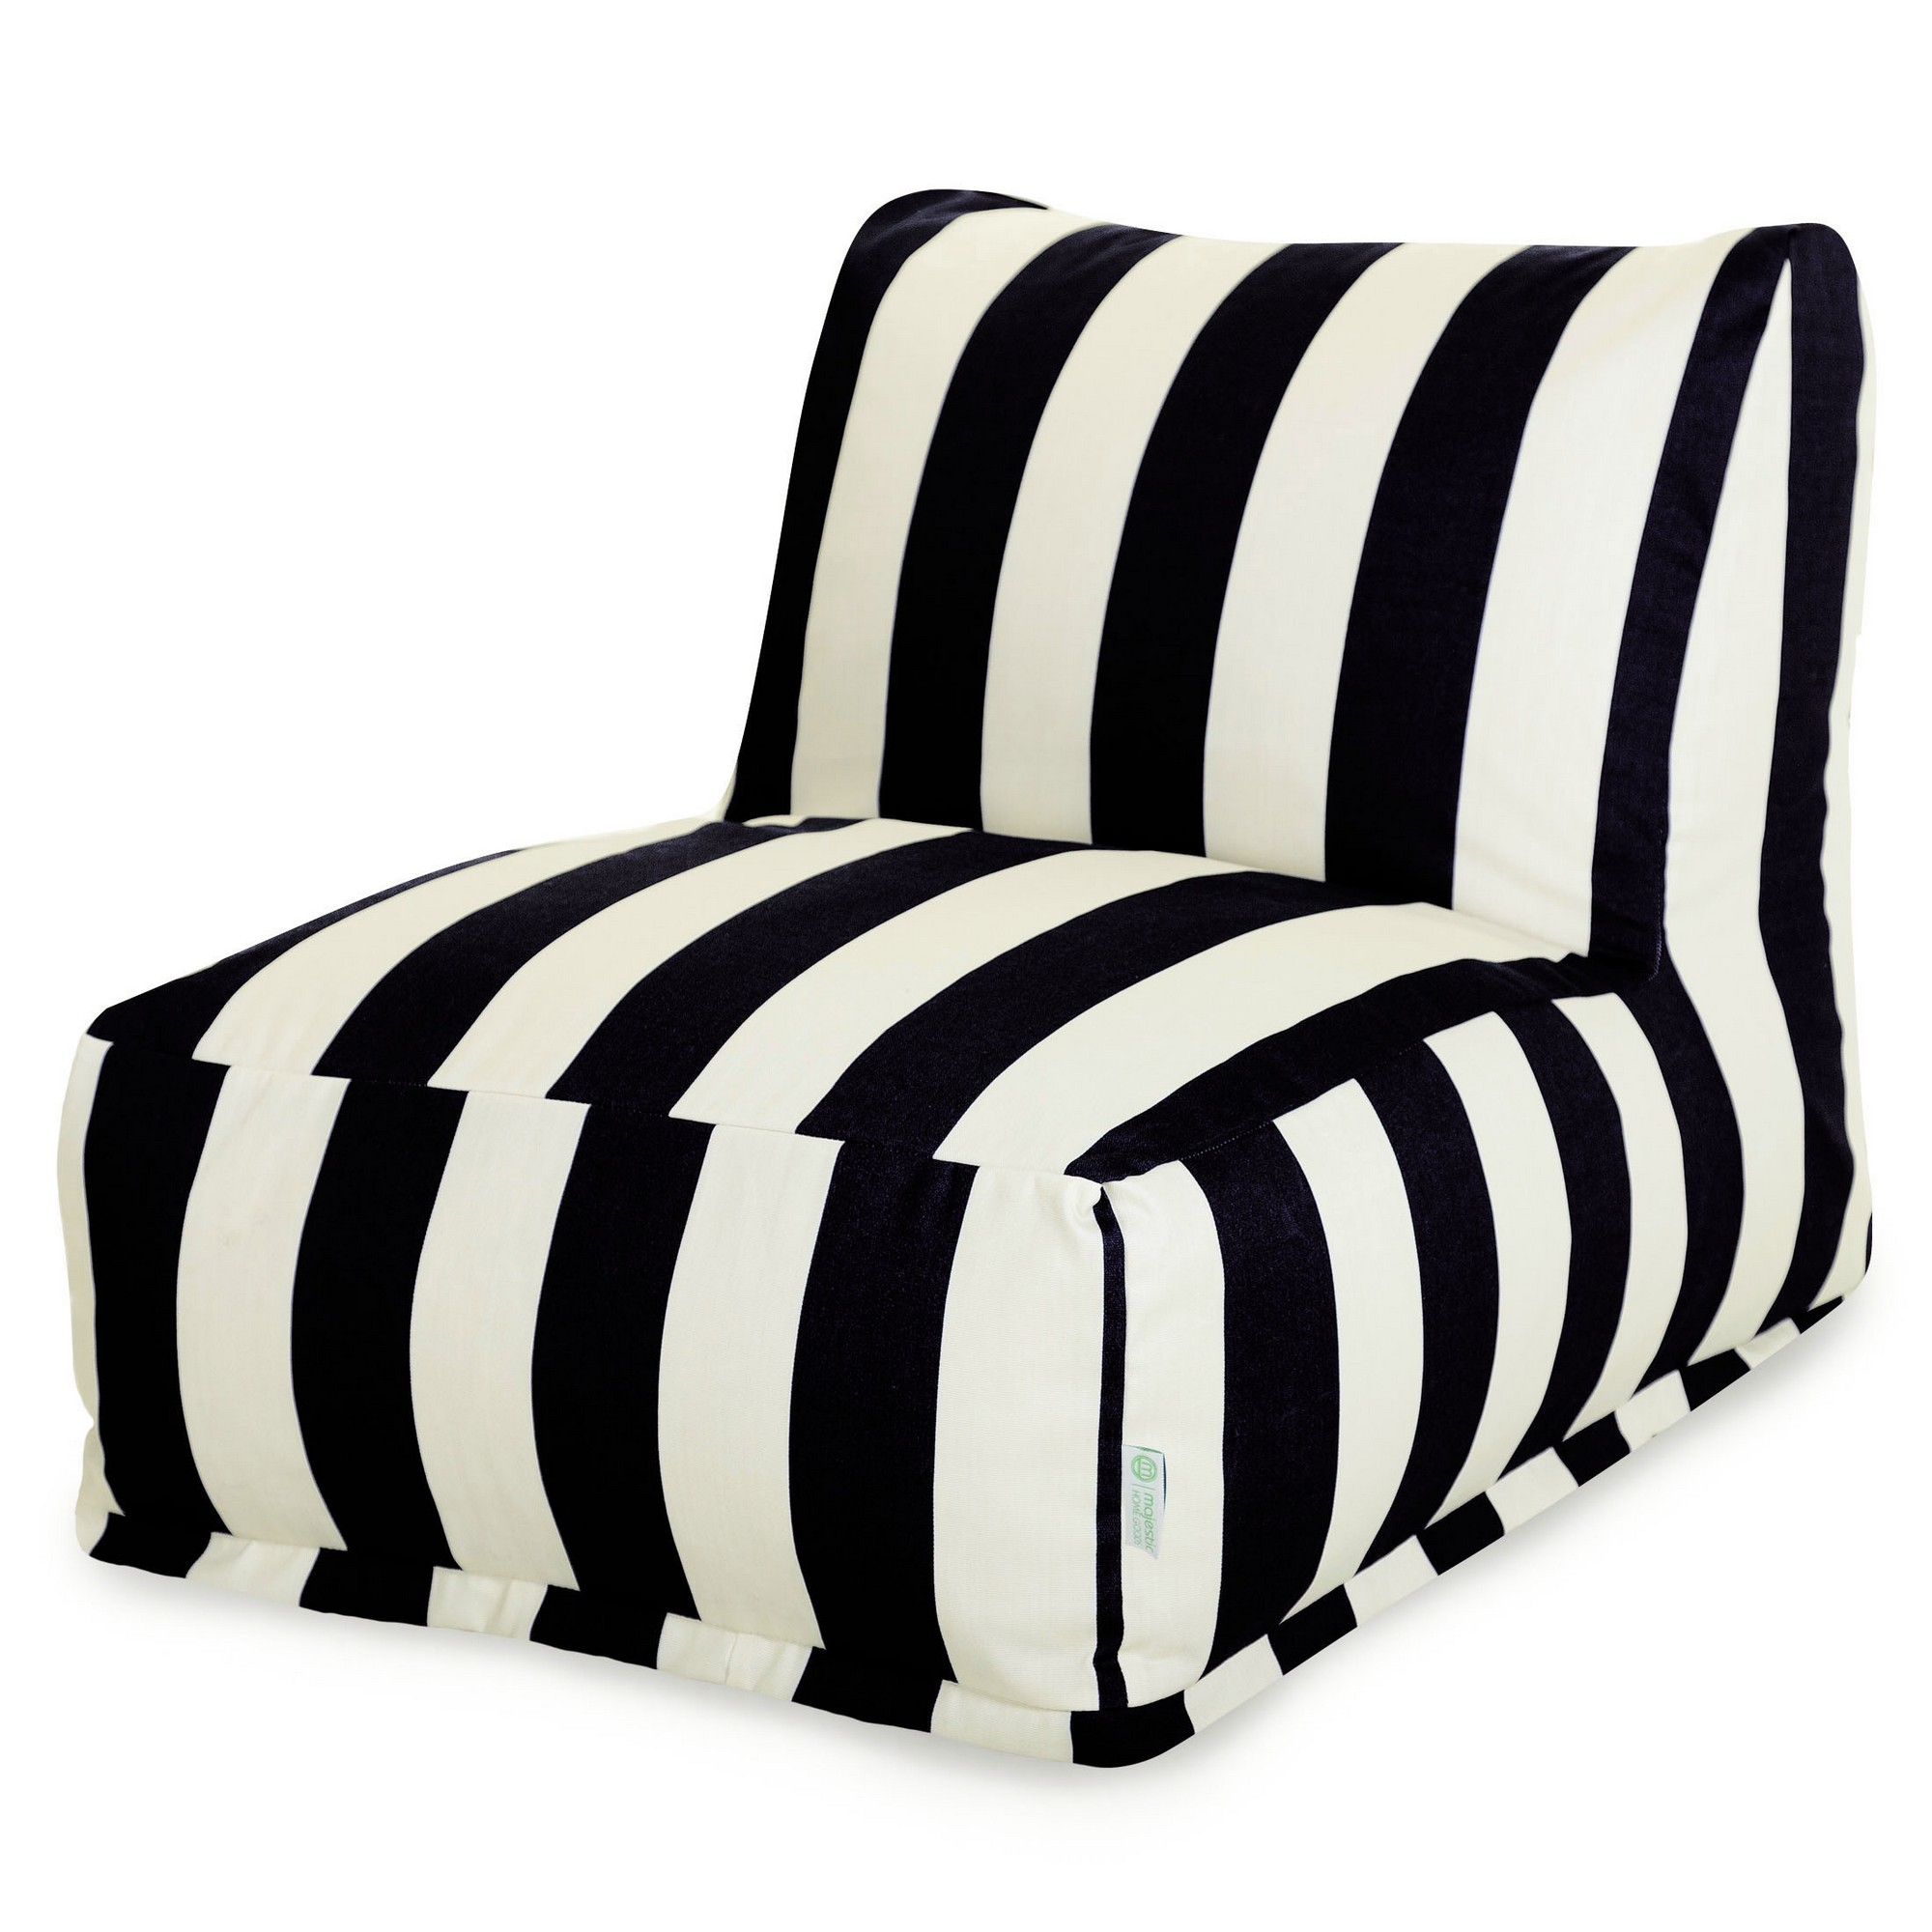 Majestic Home Goods Indoor Outdoor Black Vertical Stripe Chair Lounger Bean Bag 36 in L x 27 in W x 24 in H